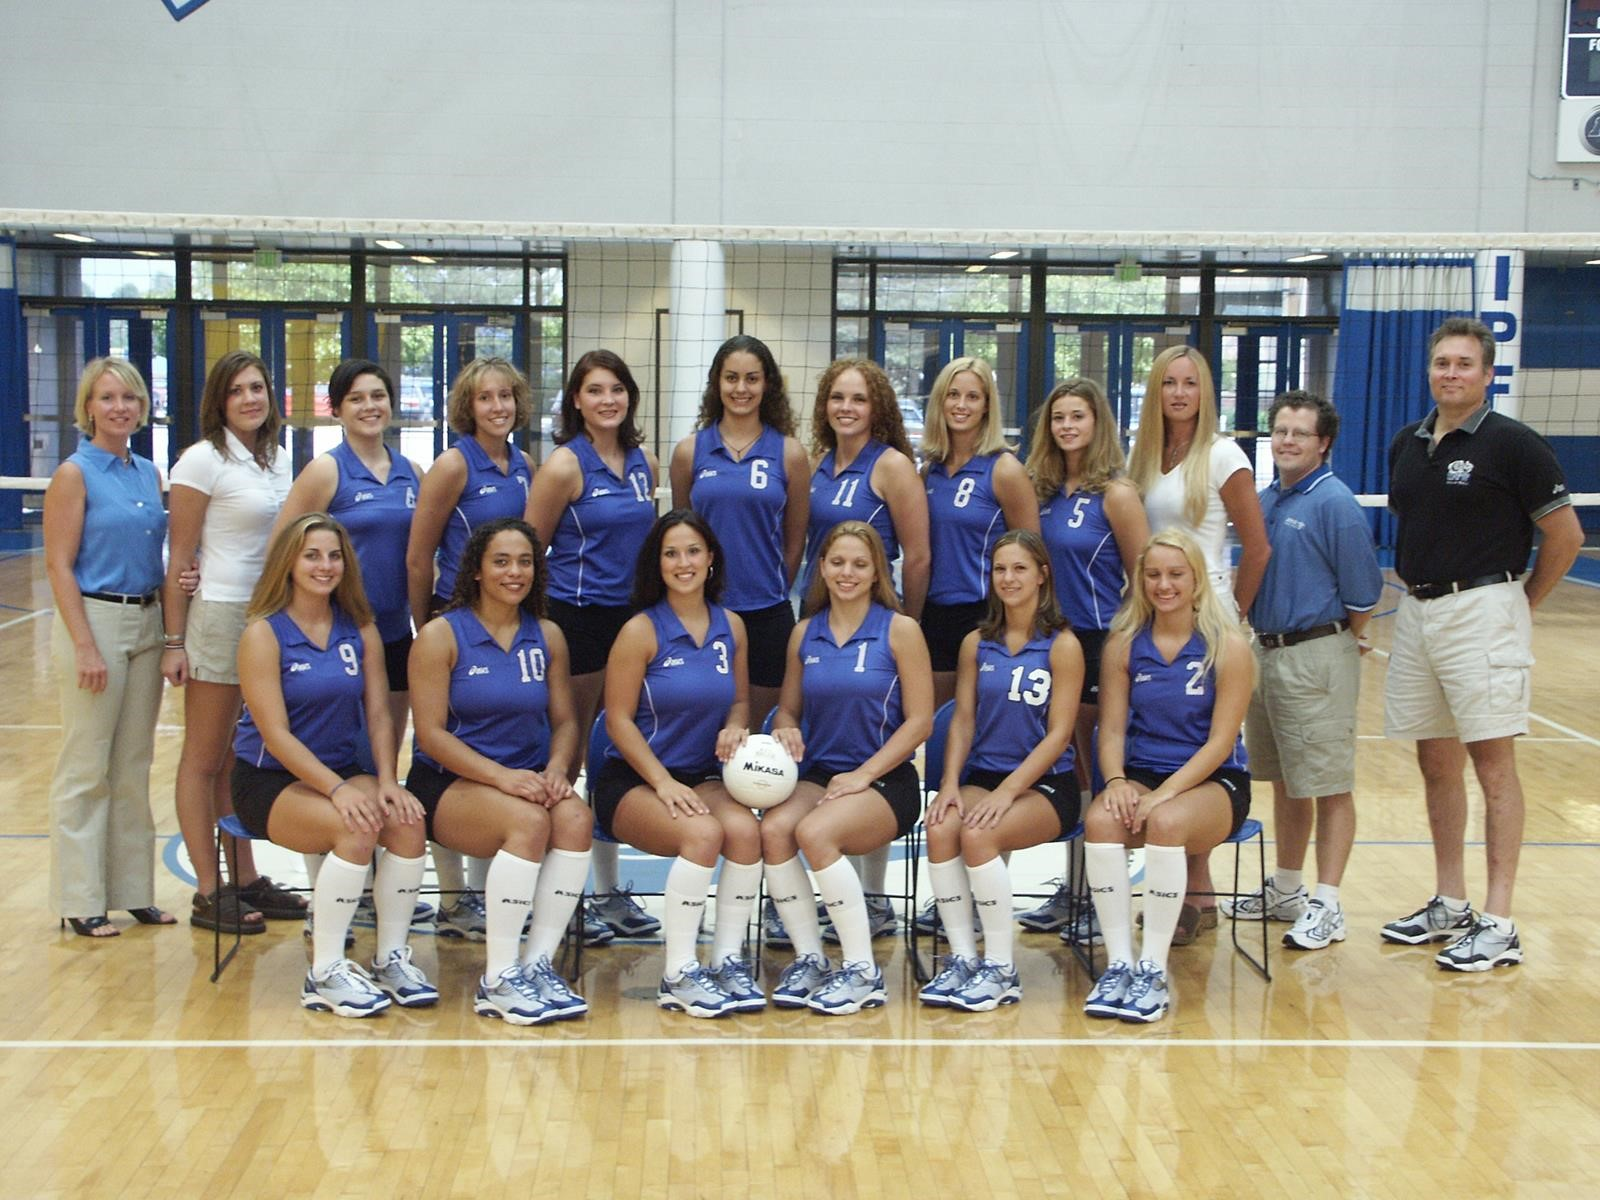 2002 Women S Volleyball Roster Purdue Fort Wayne Athletics